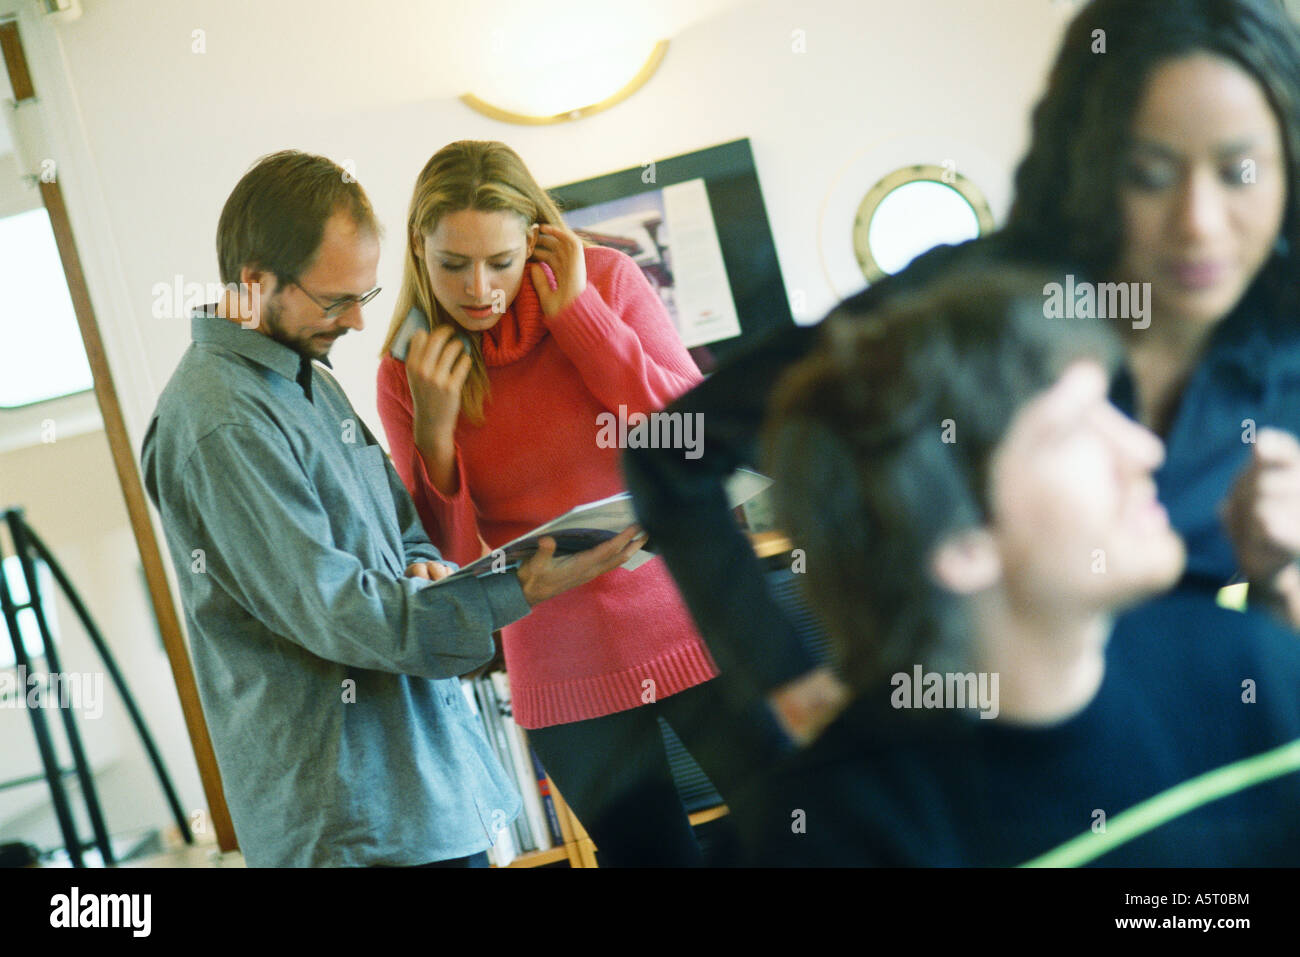 Man and woman looking at catalog, second man and woman in foreground - Stock Image